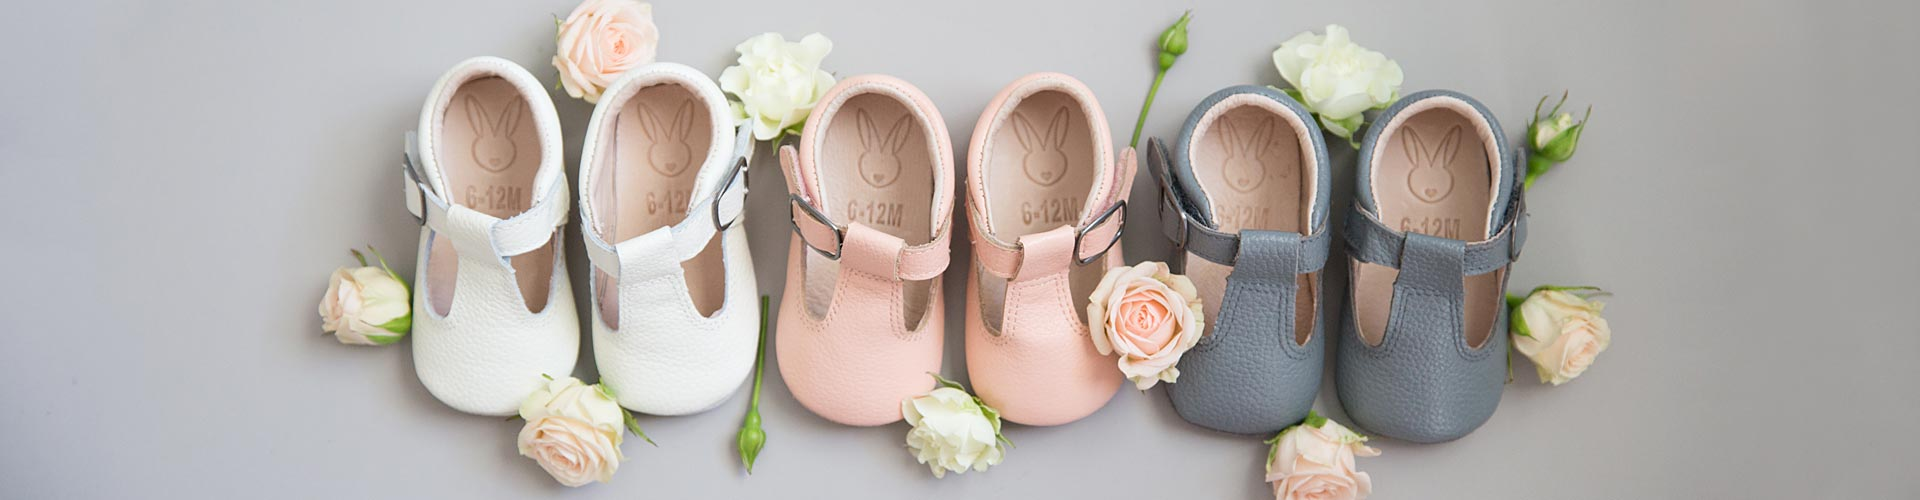 Aston baby shoes - mary jane shoes for toddlers and babies